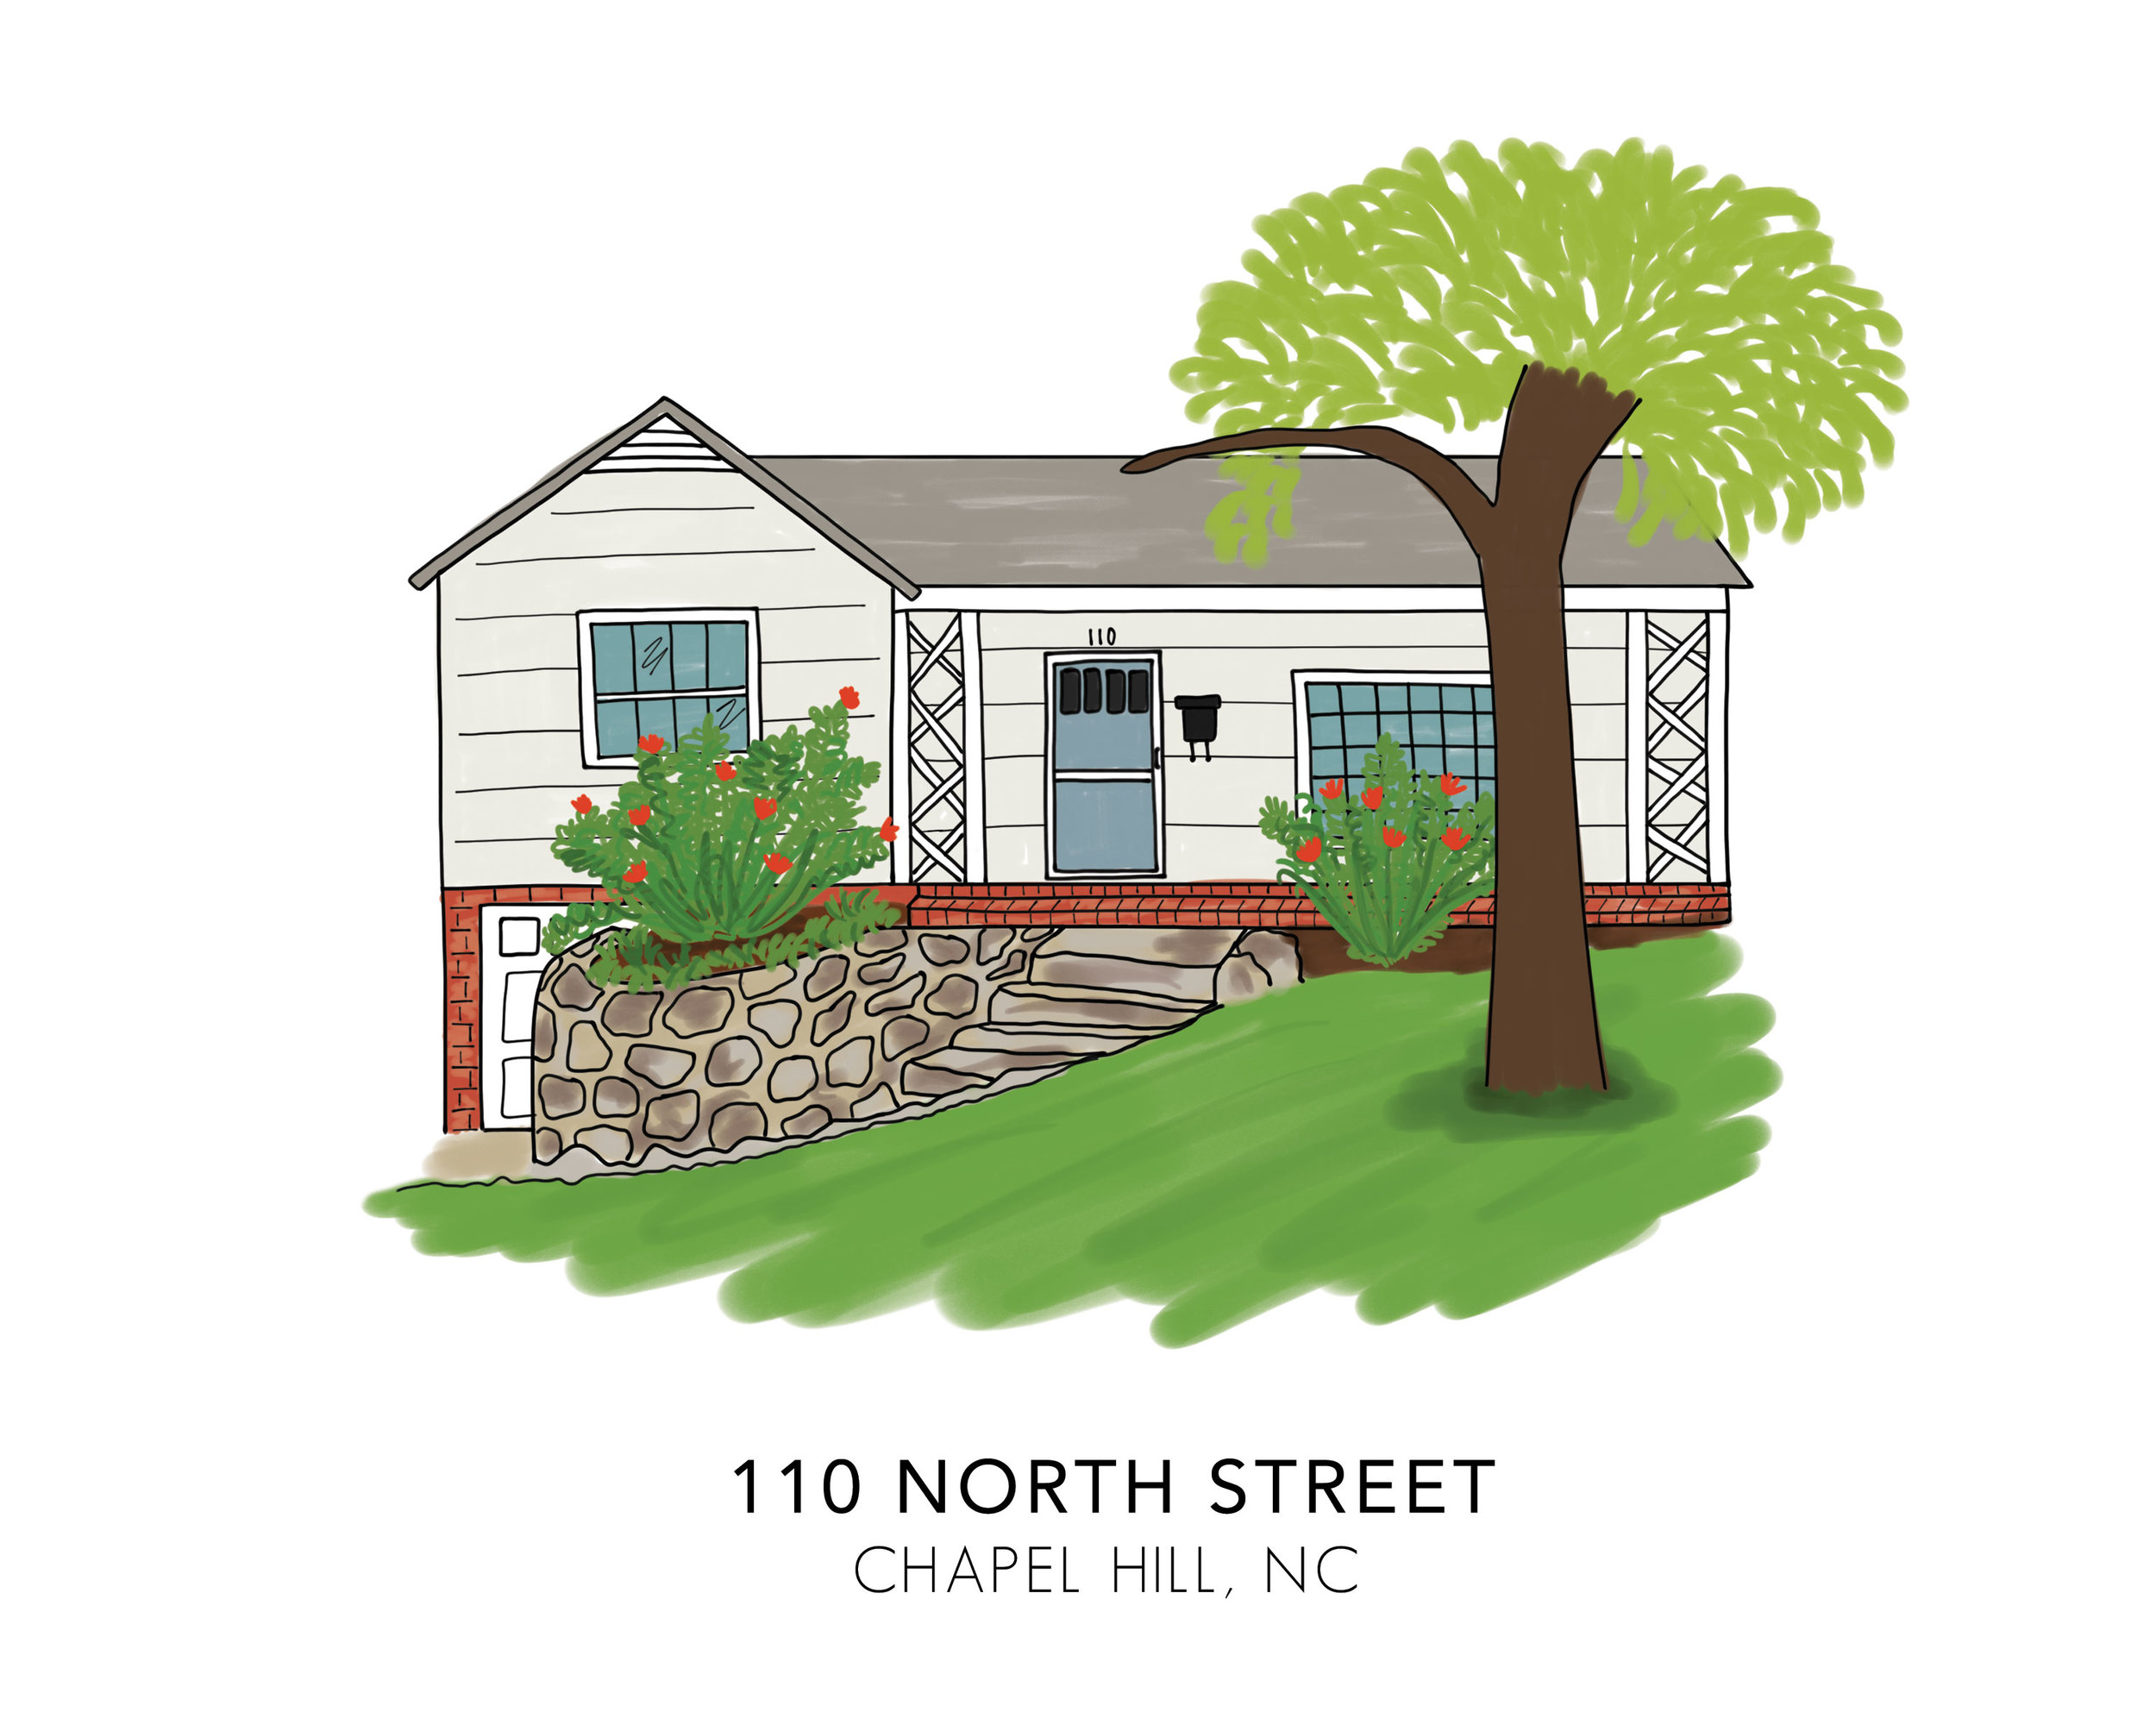 NorthSt_House_8x10.jpg